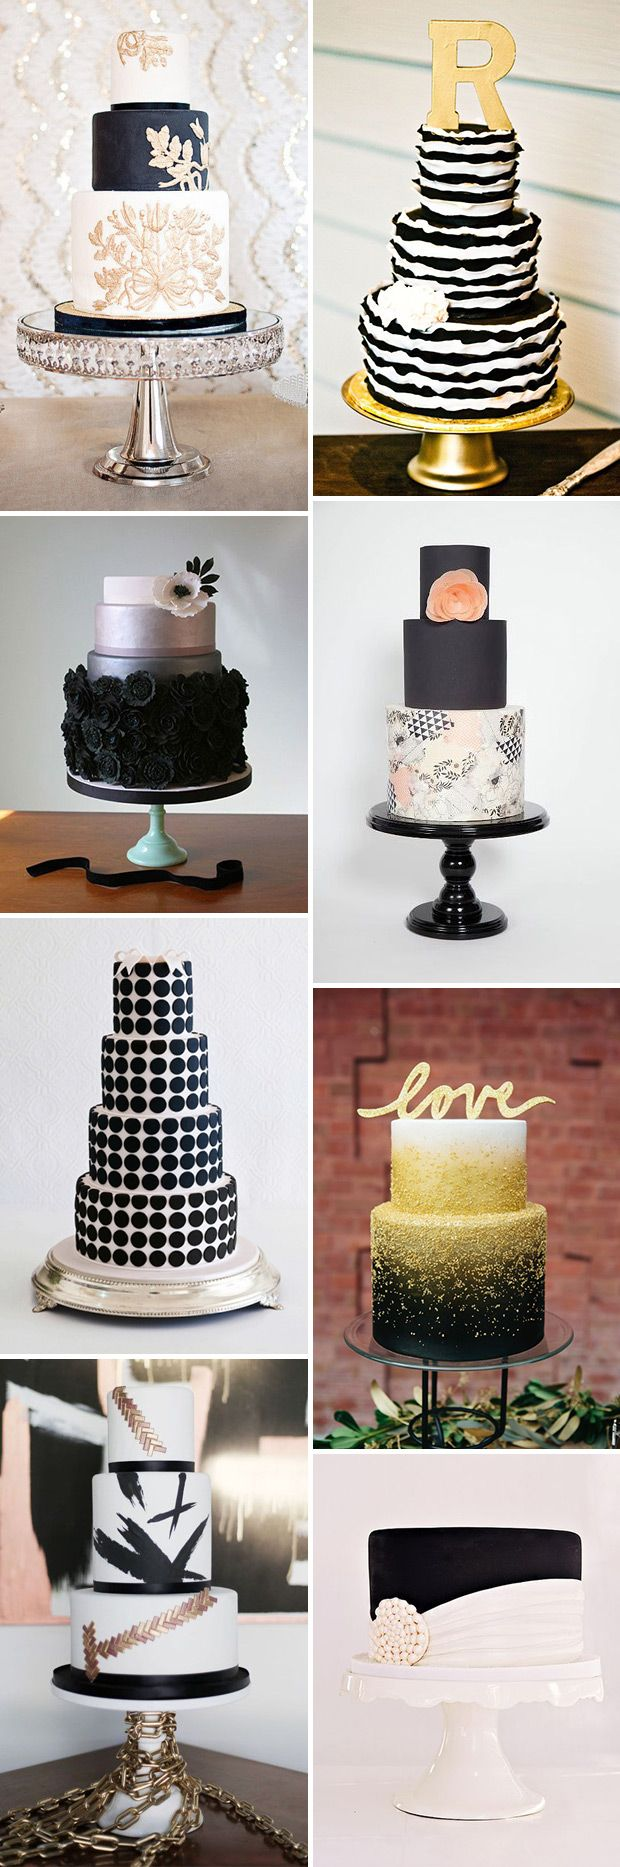 Gorgeous Black and White Wedding Cakes.♥..¸¸.•♥•